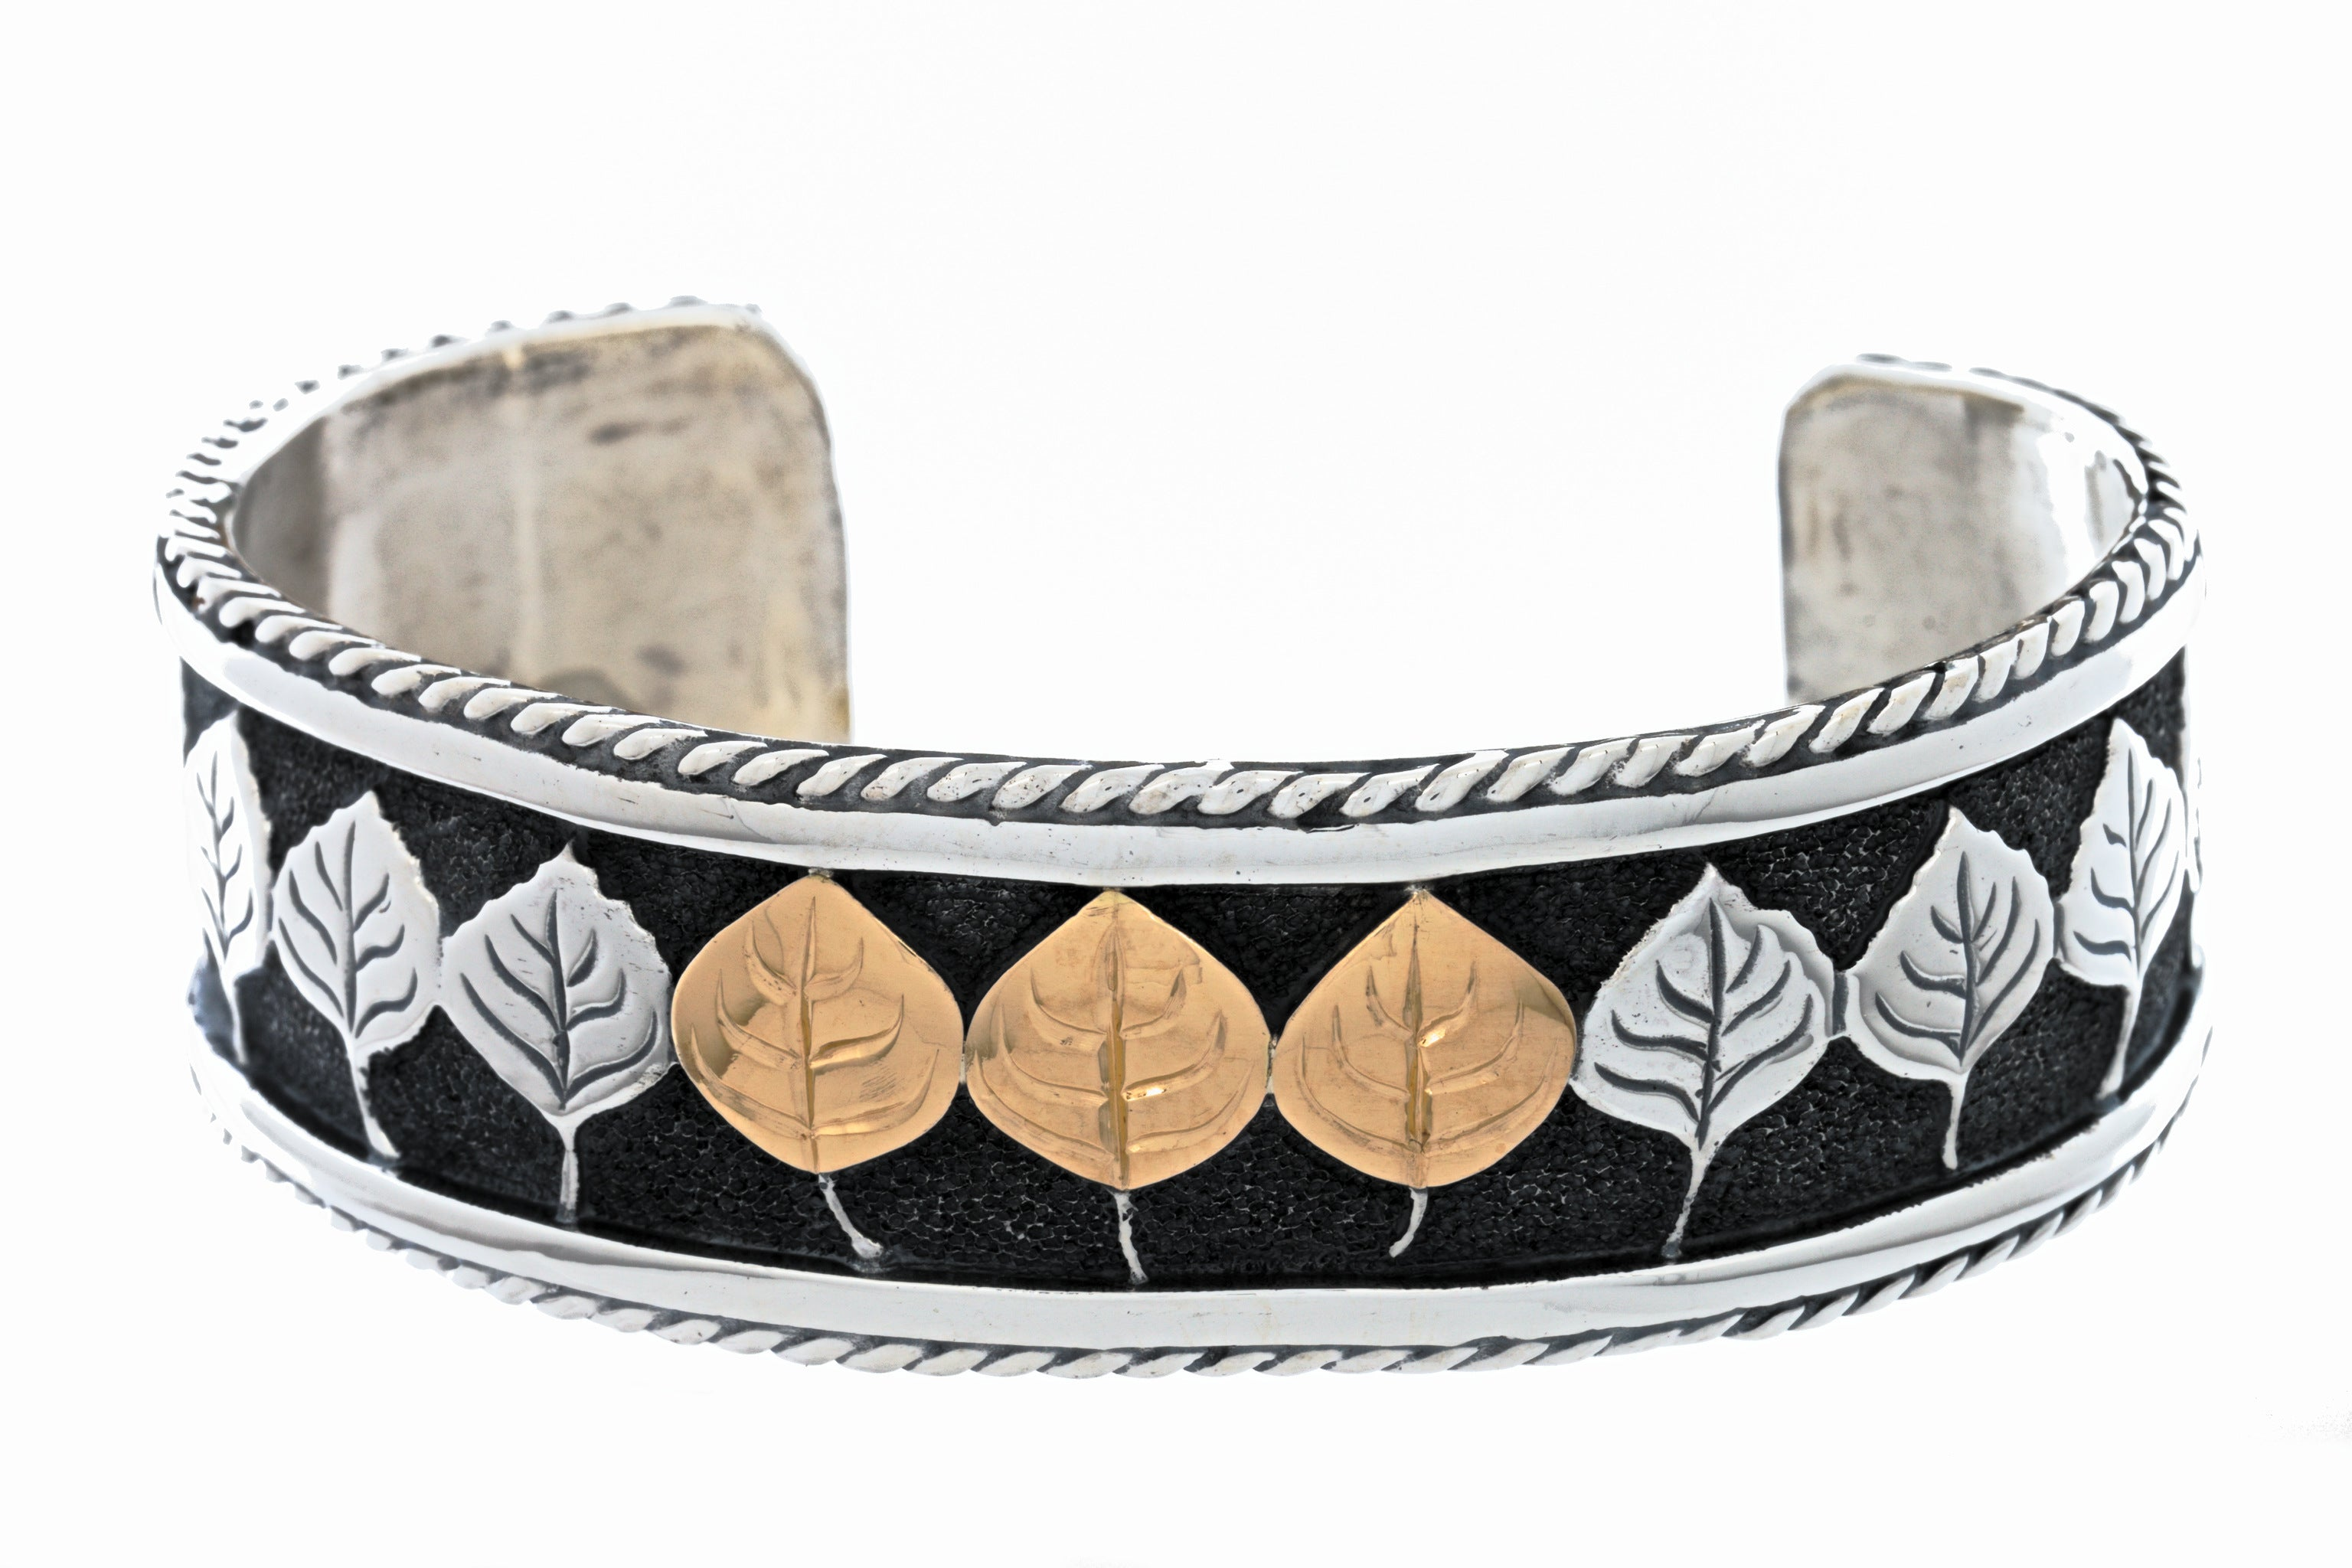 Aspen Cuff Bracelet with Rope Border